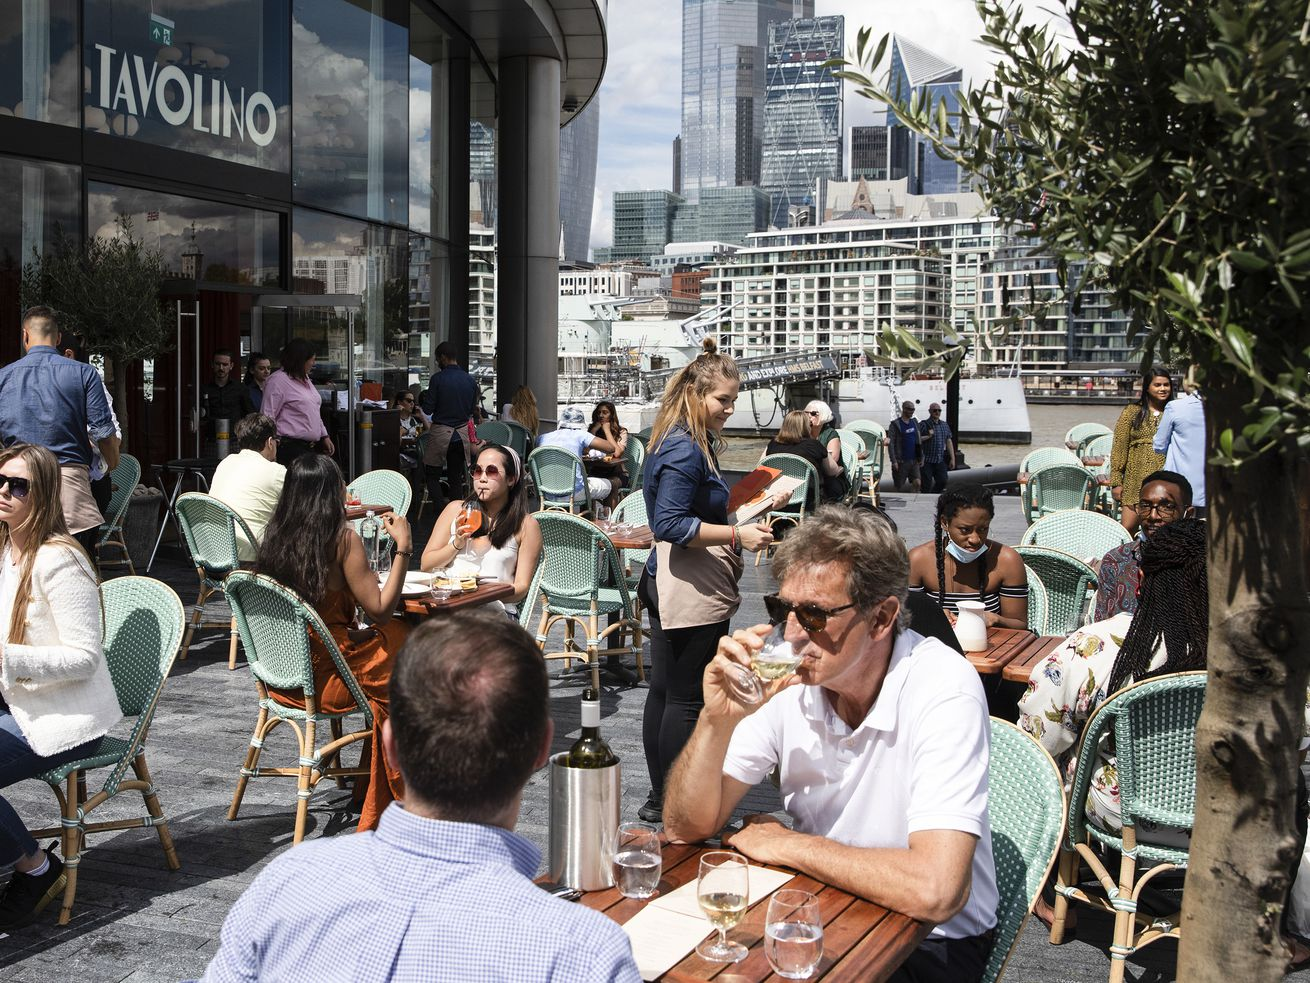 People sitting at outdoor restaurant seating on a London street.